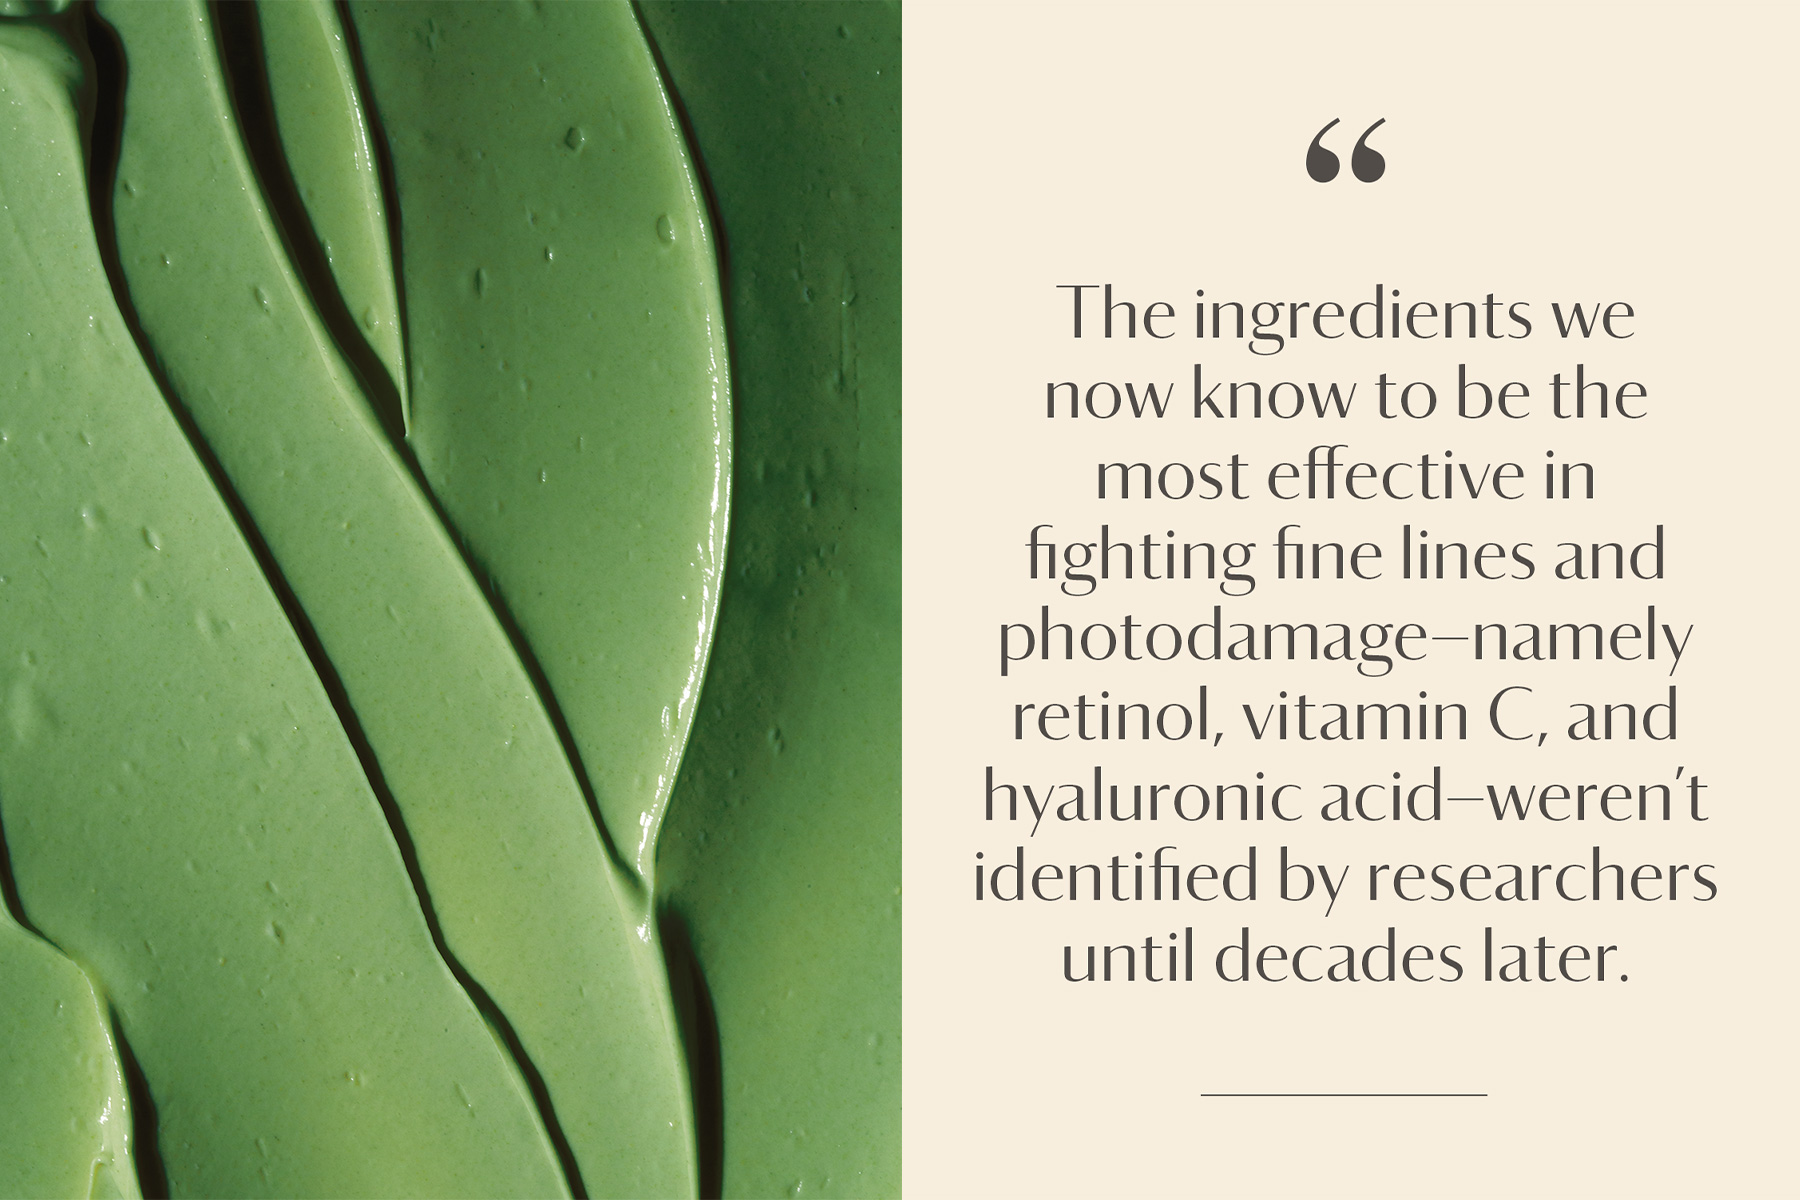 """Close up of green beauty cream next to quote (""""The ingredients we now know to be the most effective in fighting fine lines and photodamage weren't identified by researchers until decades later."""")"""